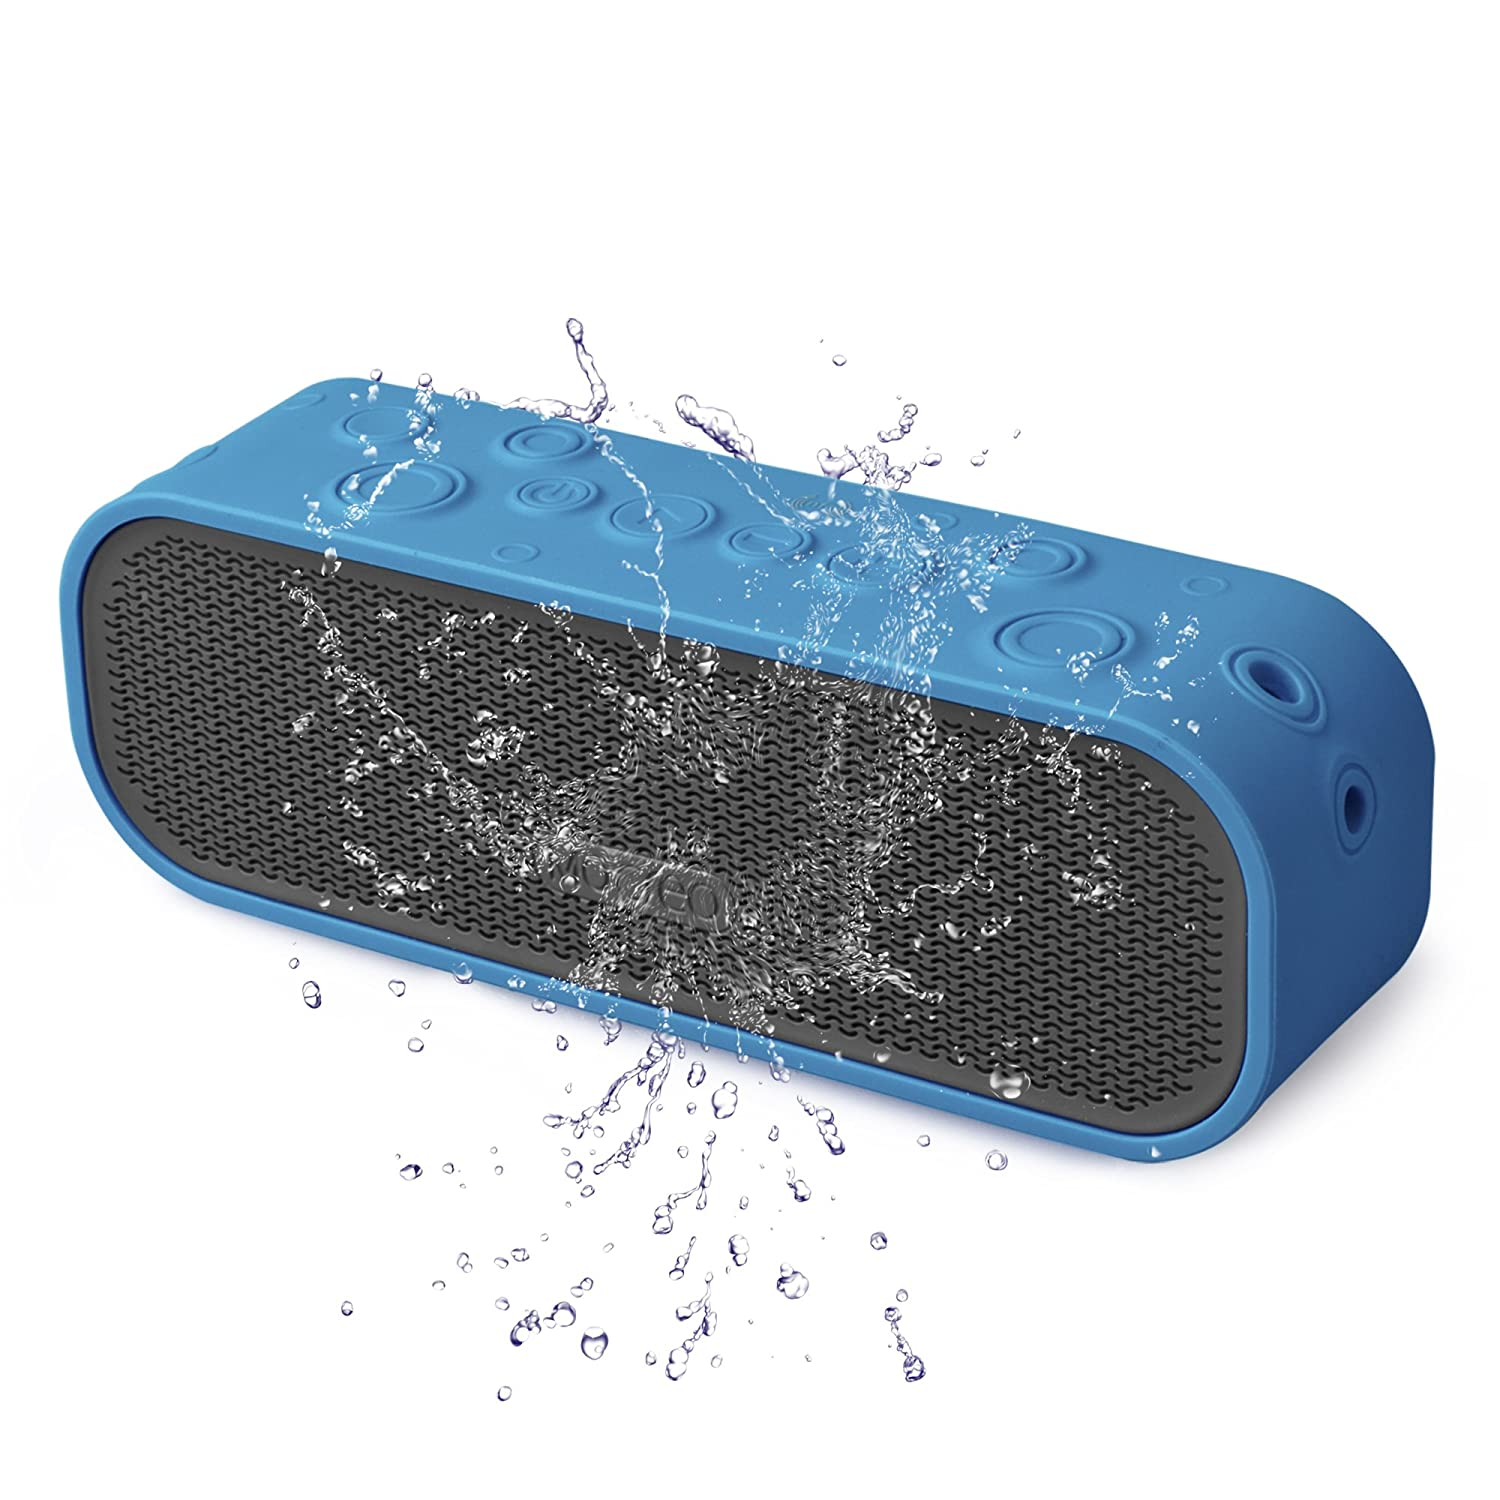 MOCREO® Water-resistant NFC Portable Bluetooth Speaker Rugged Splash Proof + Hands-free Speakerphone w/ Built-in Mic + Dual Stereo Speakers + TF Card Slot Indoor/Outdoors Waterproof Speaker IPX5 + Latest Bluetooth 4.0 W/ NFC Compatible w/ Apple iPhone 6 sdh 100 mini portable bluetooth v3 0 stereo speaker w mic tf slot white black